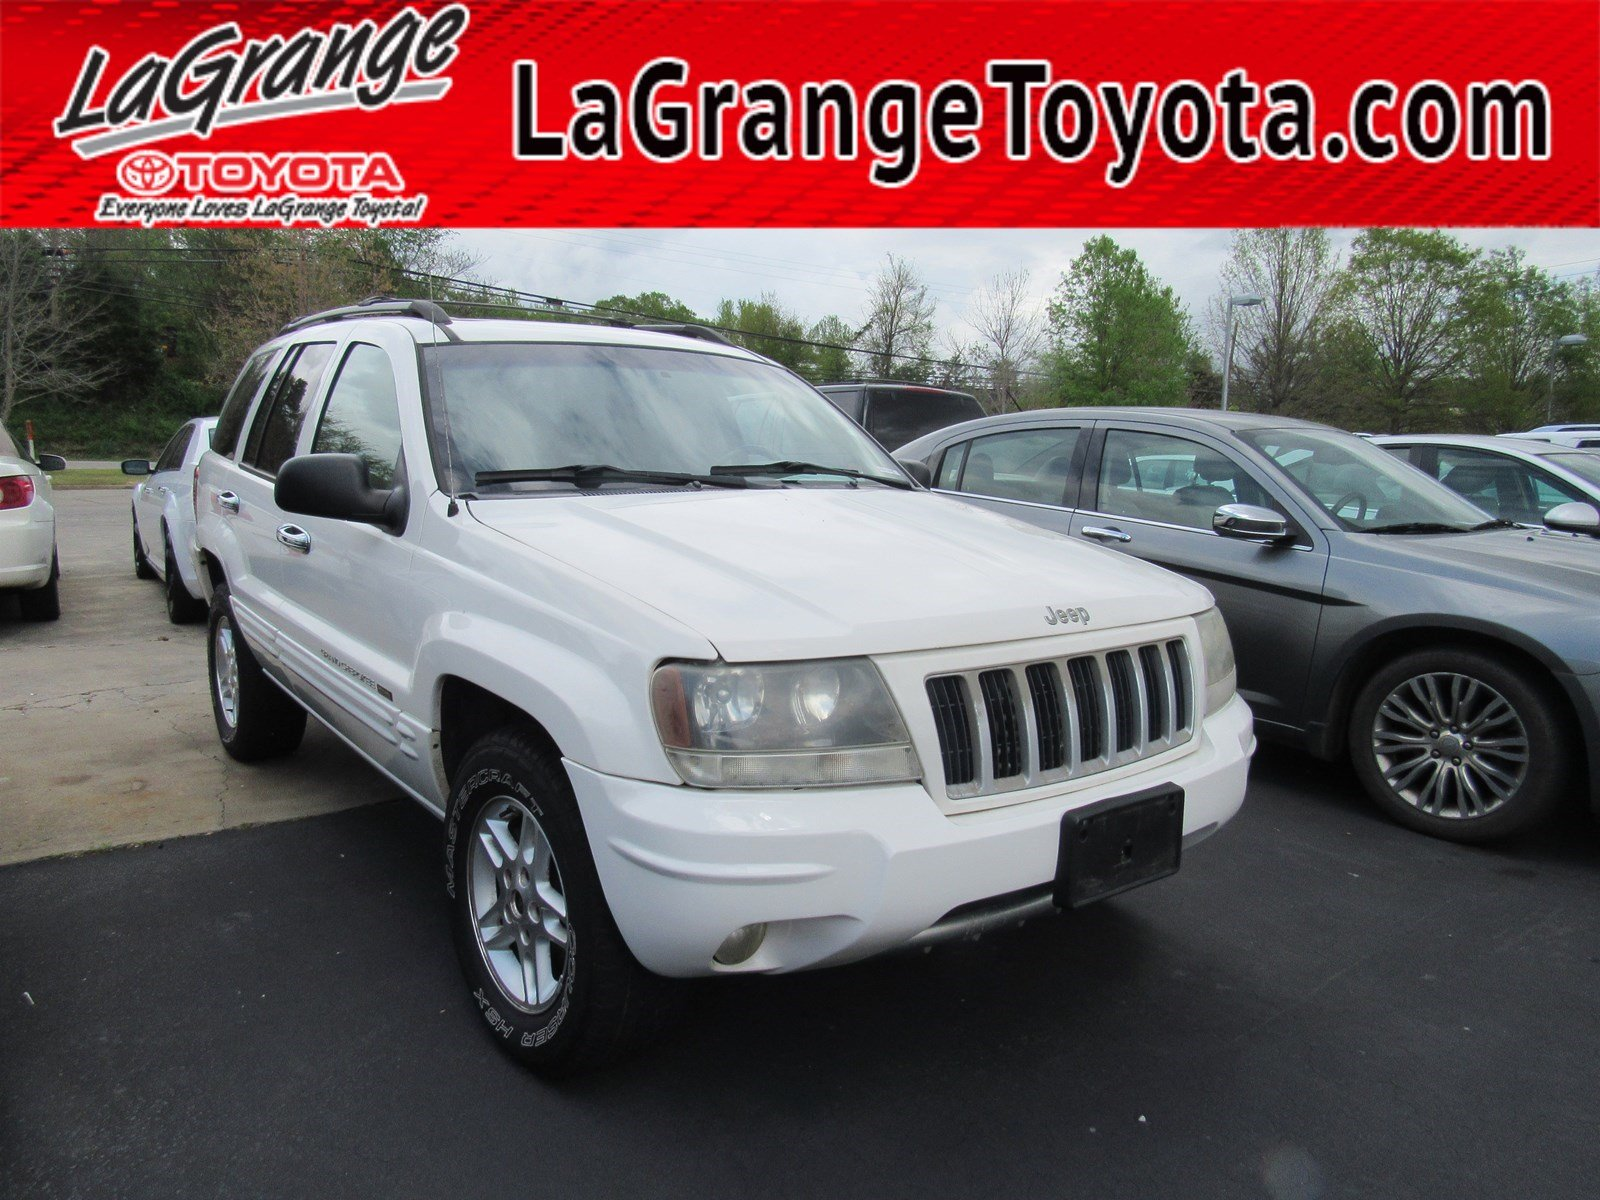 Pre-Owned 2004 Jeep Grand Cherokee 4dr Laredo